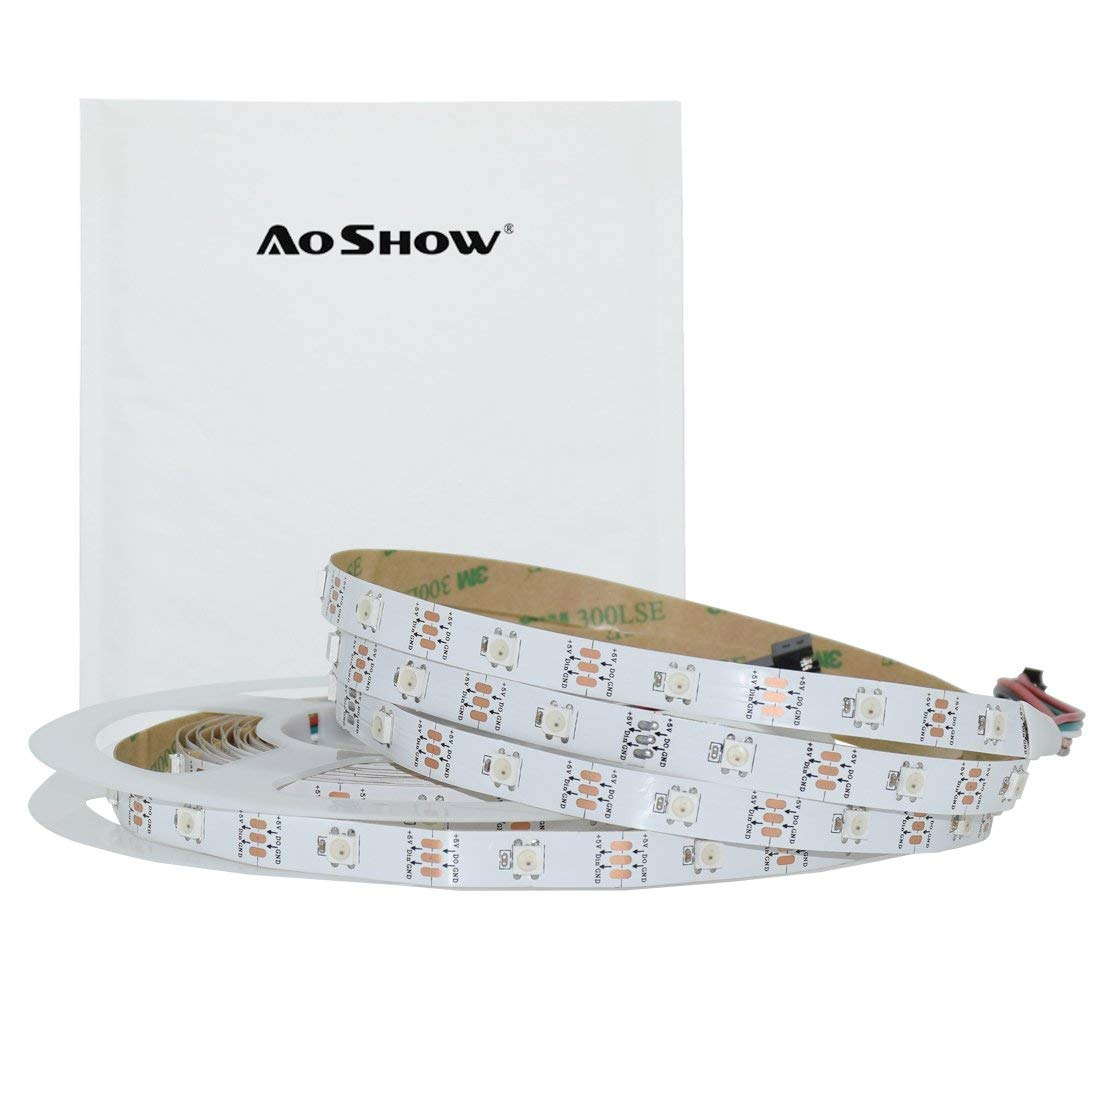 Aoshow DMX LED Strip Light, 30Pixels/M, Magic Color WS2812B IC built in RGB Chip, 16.4FT 150LEDs 5M Indoor LED Lighting Strip with 3M adhesive,LED Digital Display Light Non-waterproof IP20 (White PCB)